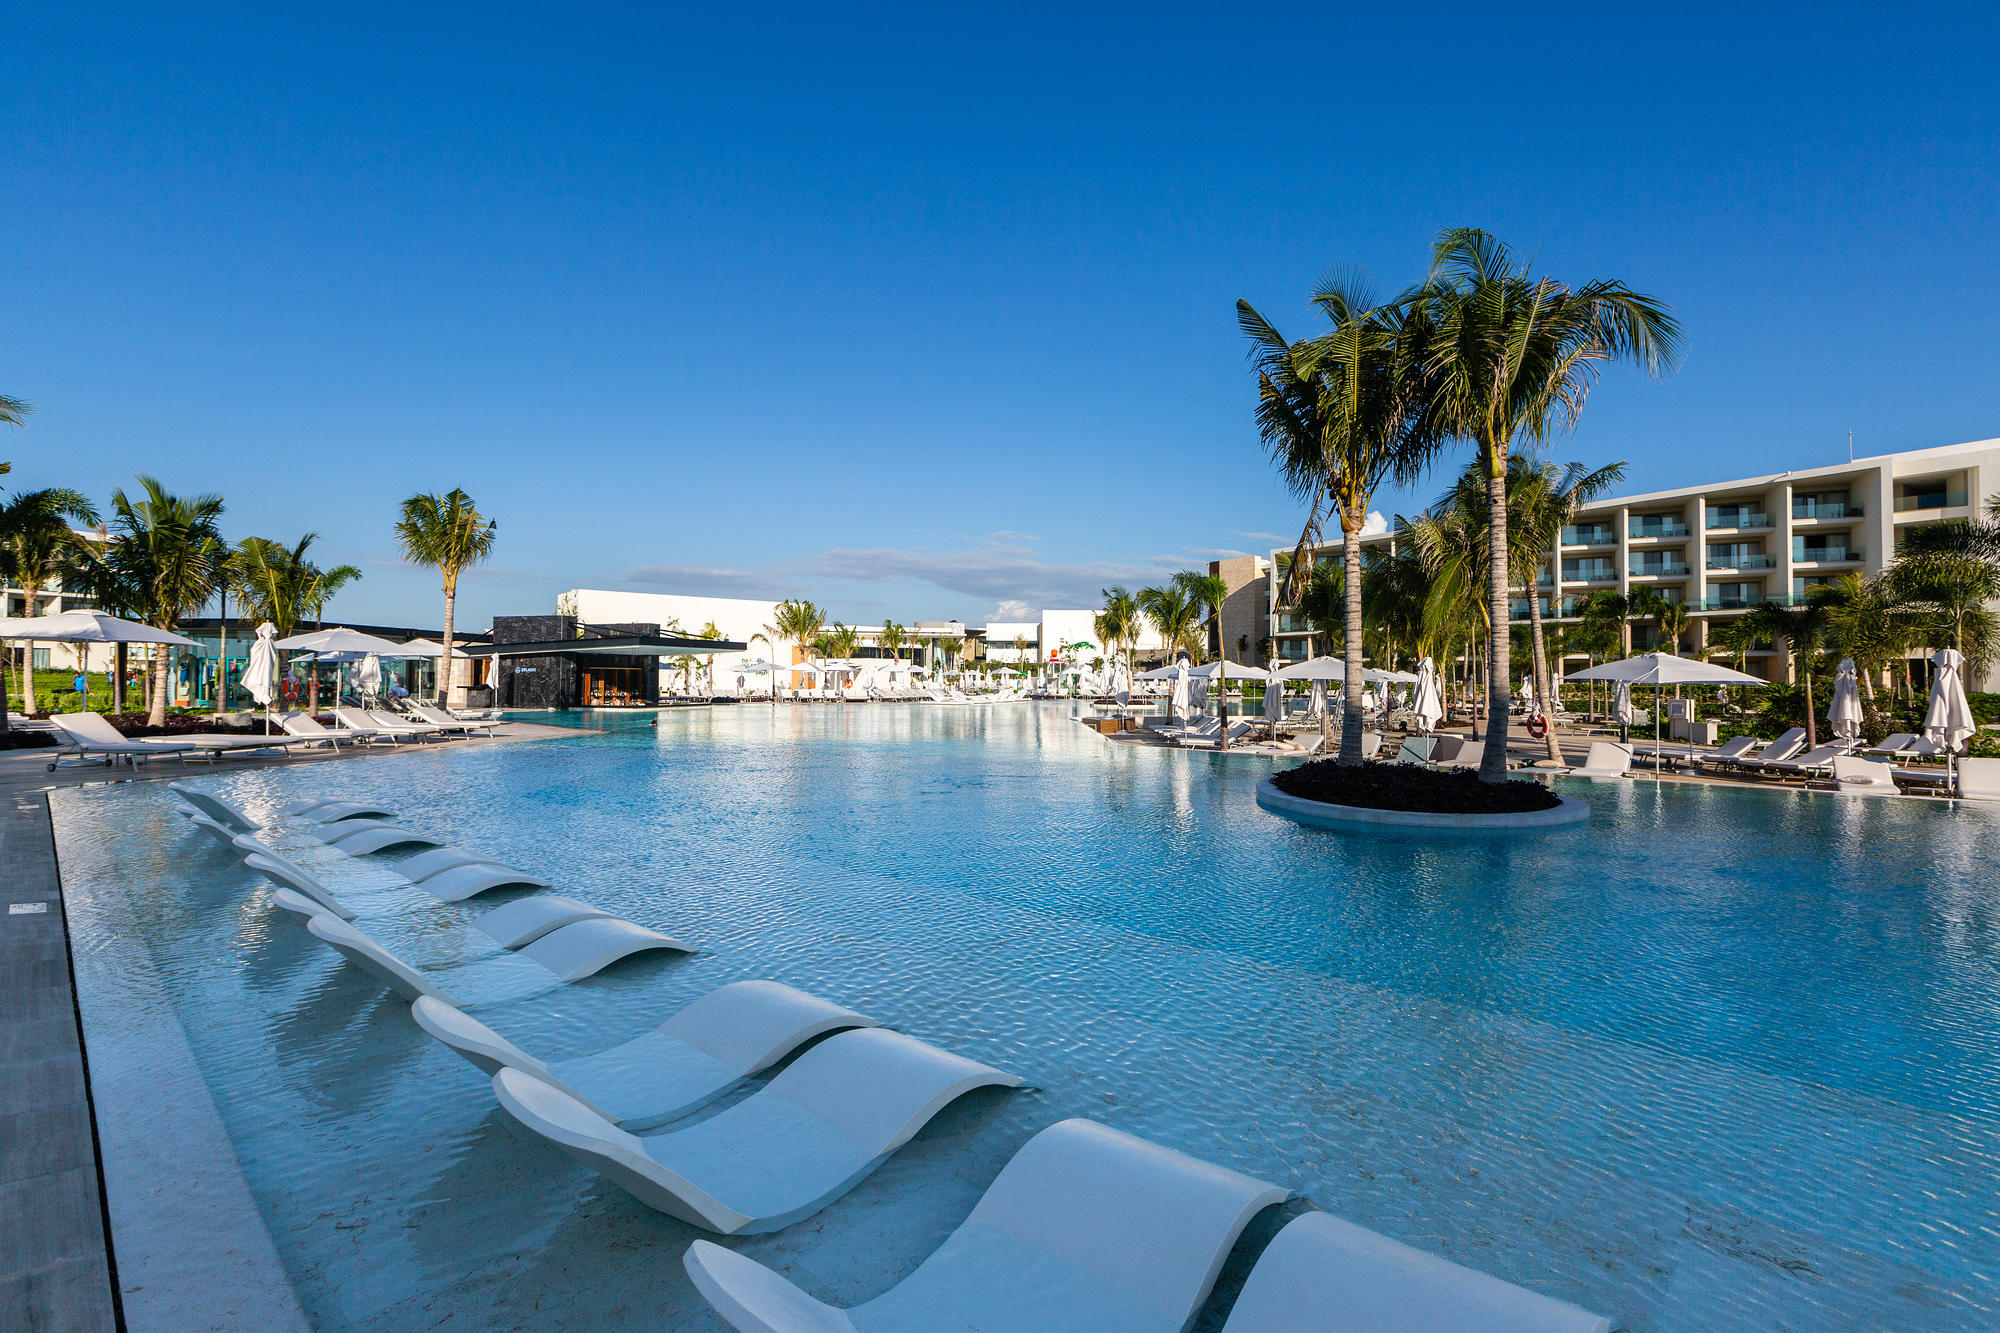 The main pool at Grand Palladium Costa Mujeres in Playa Mujeres